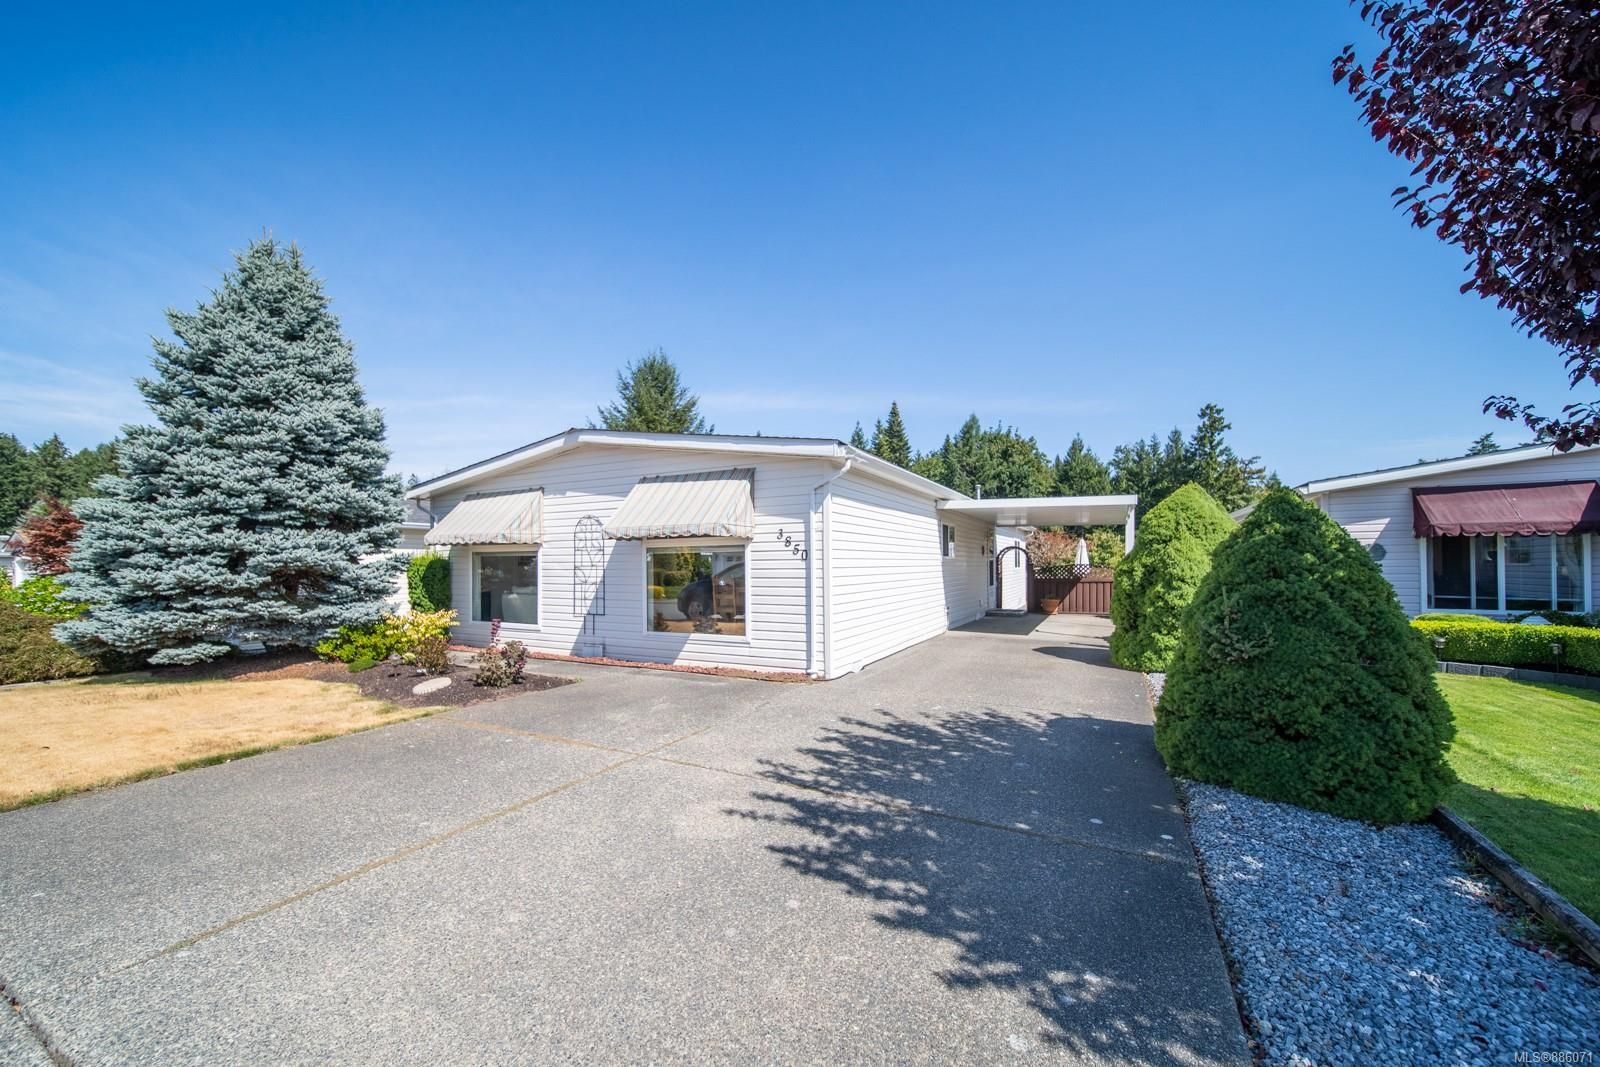 Main Photo: 71 3850 Maplewood Dr in : Na North Jingle Pot Manufactured Home for sale (Nanaimo)  : MLS®# 886071